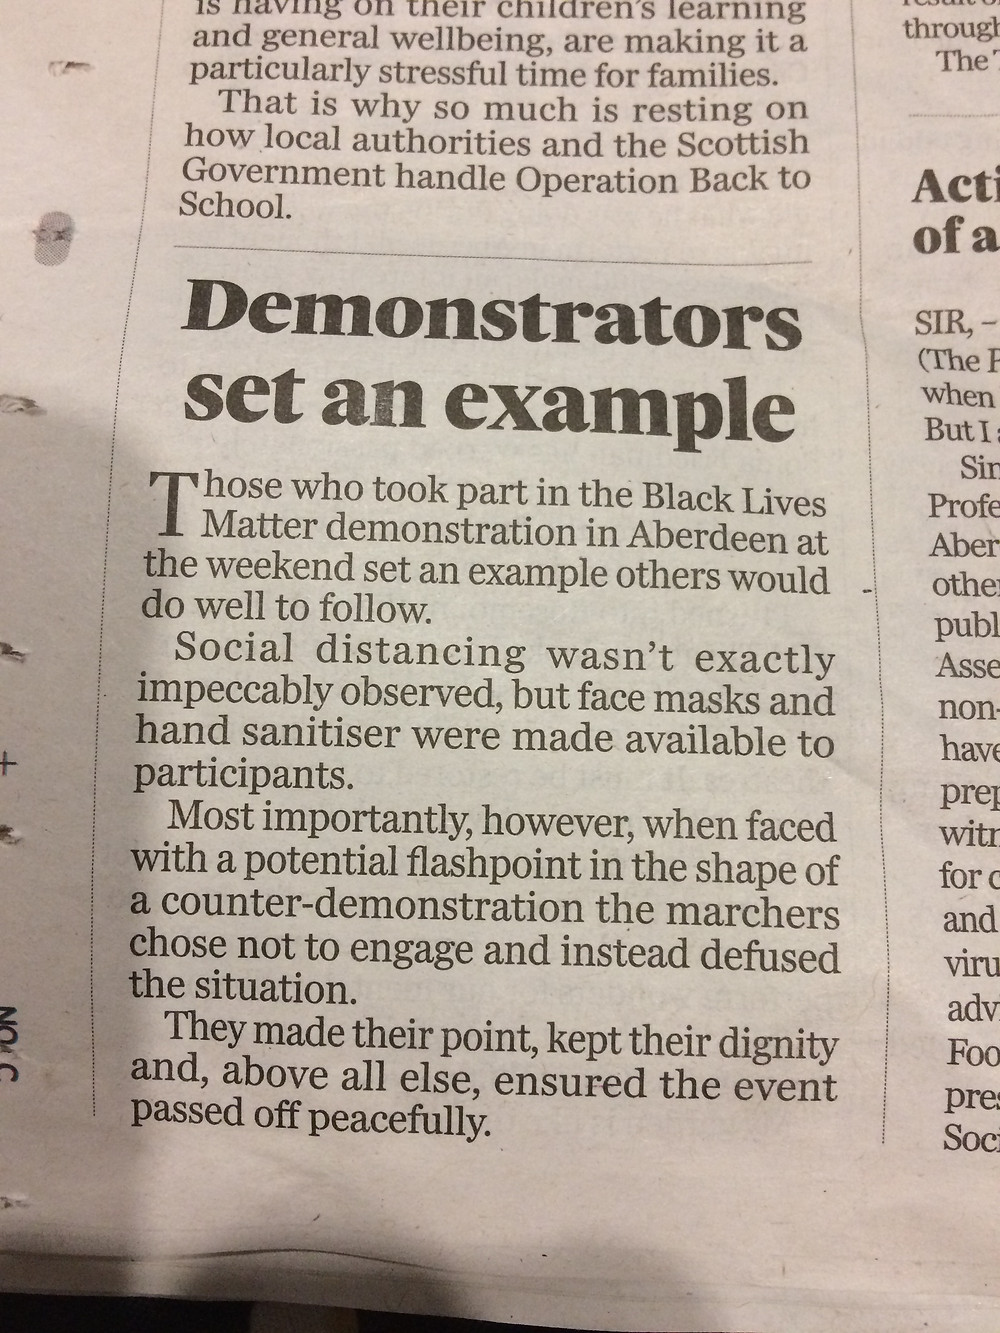 """Social distancing wasn't impeccably observed"". Understatement of the year."